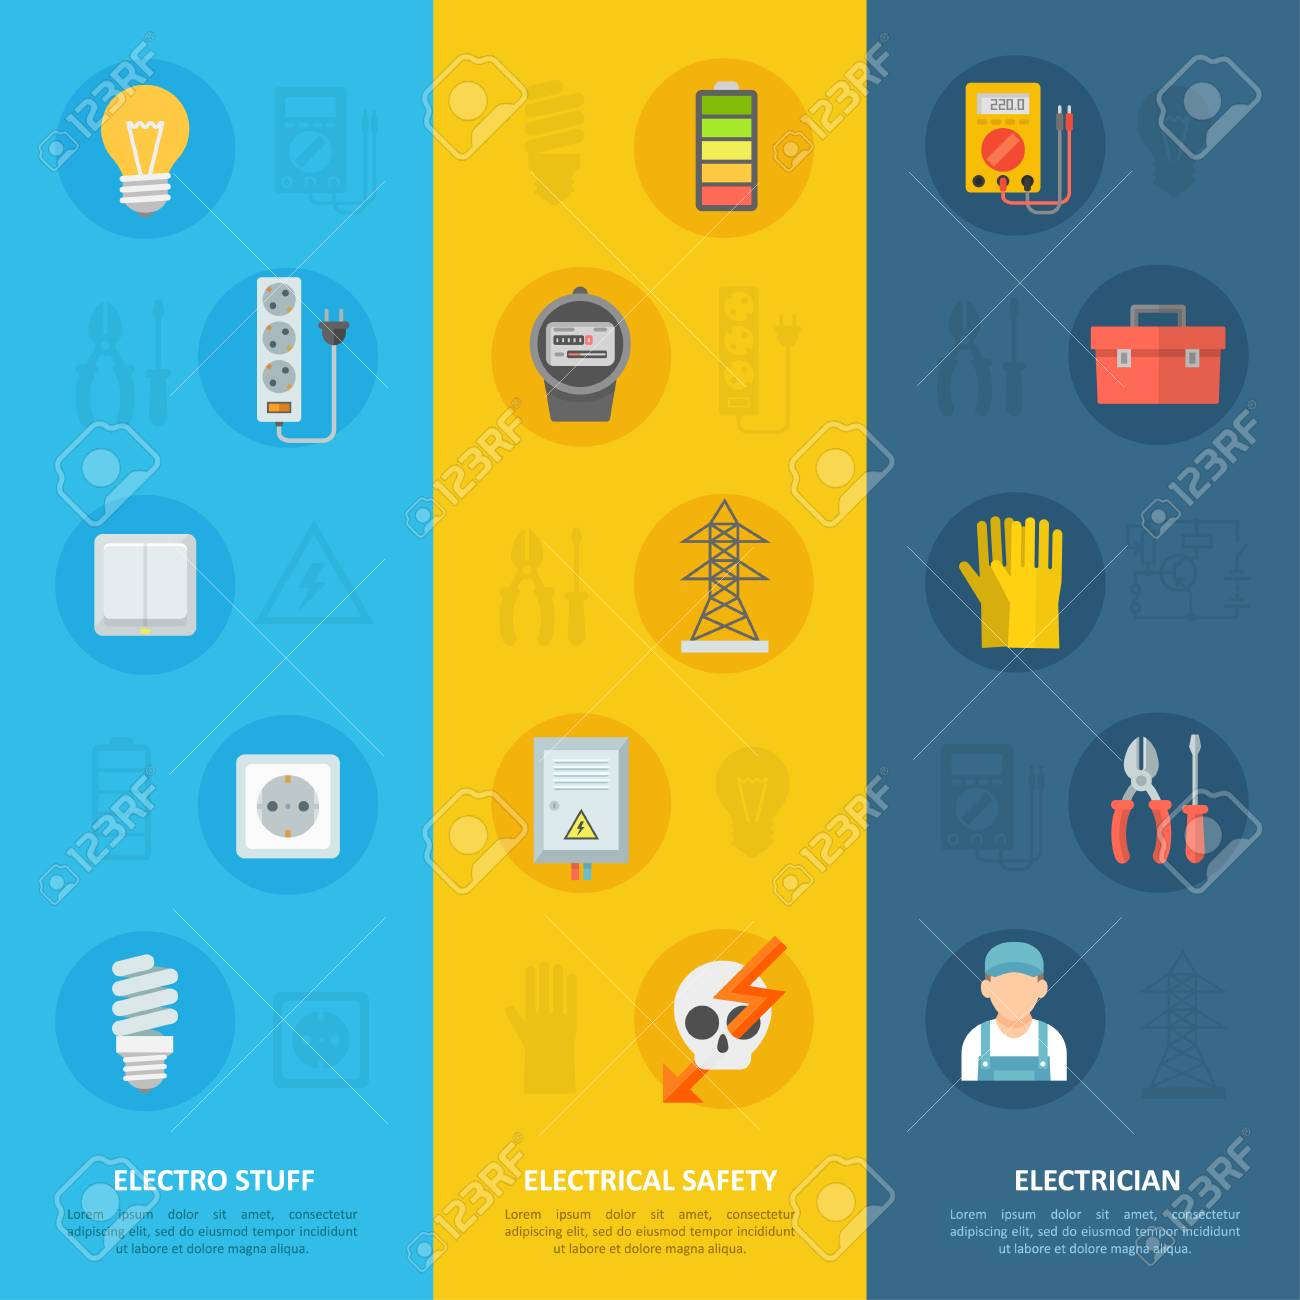 Electricity Safety And Electrician Icon Set, Educational Service ...